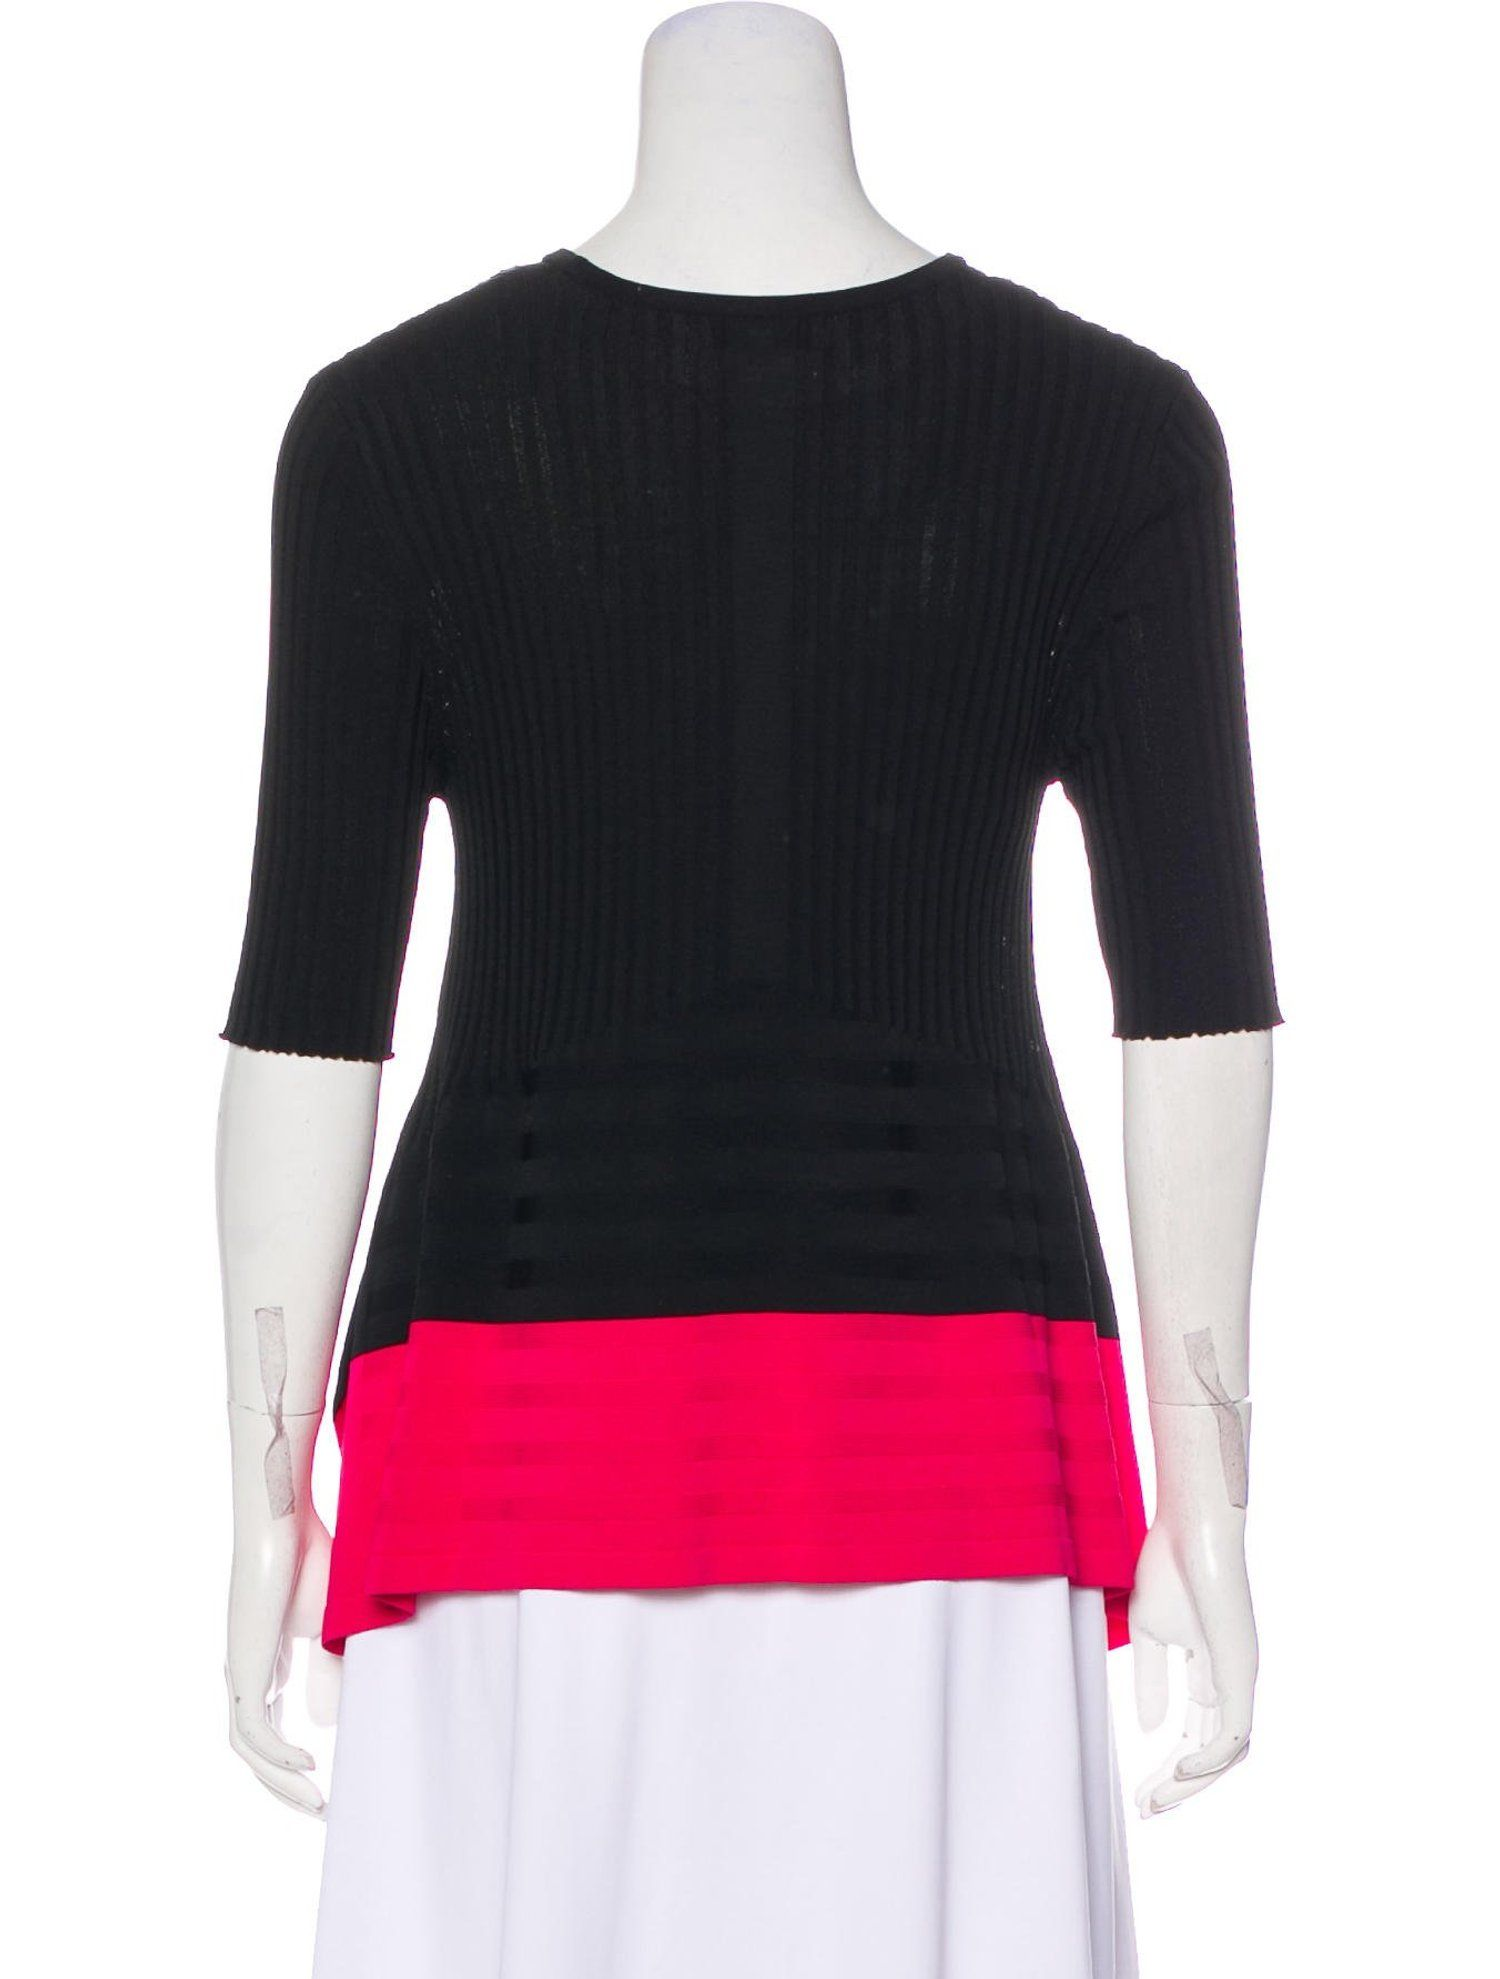 cdc0d2fc95253 Opening Ceremony Colorblock Asymmetrical Top  Ceremony  Opening  Colorblock